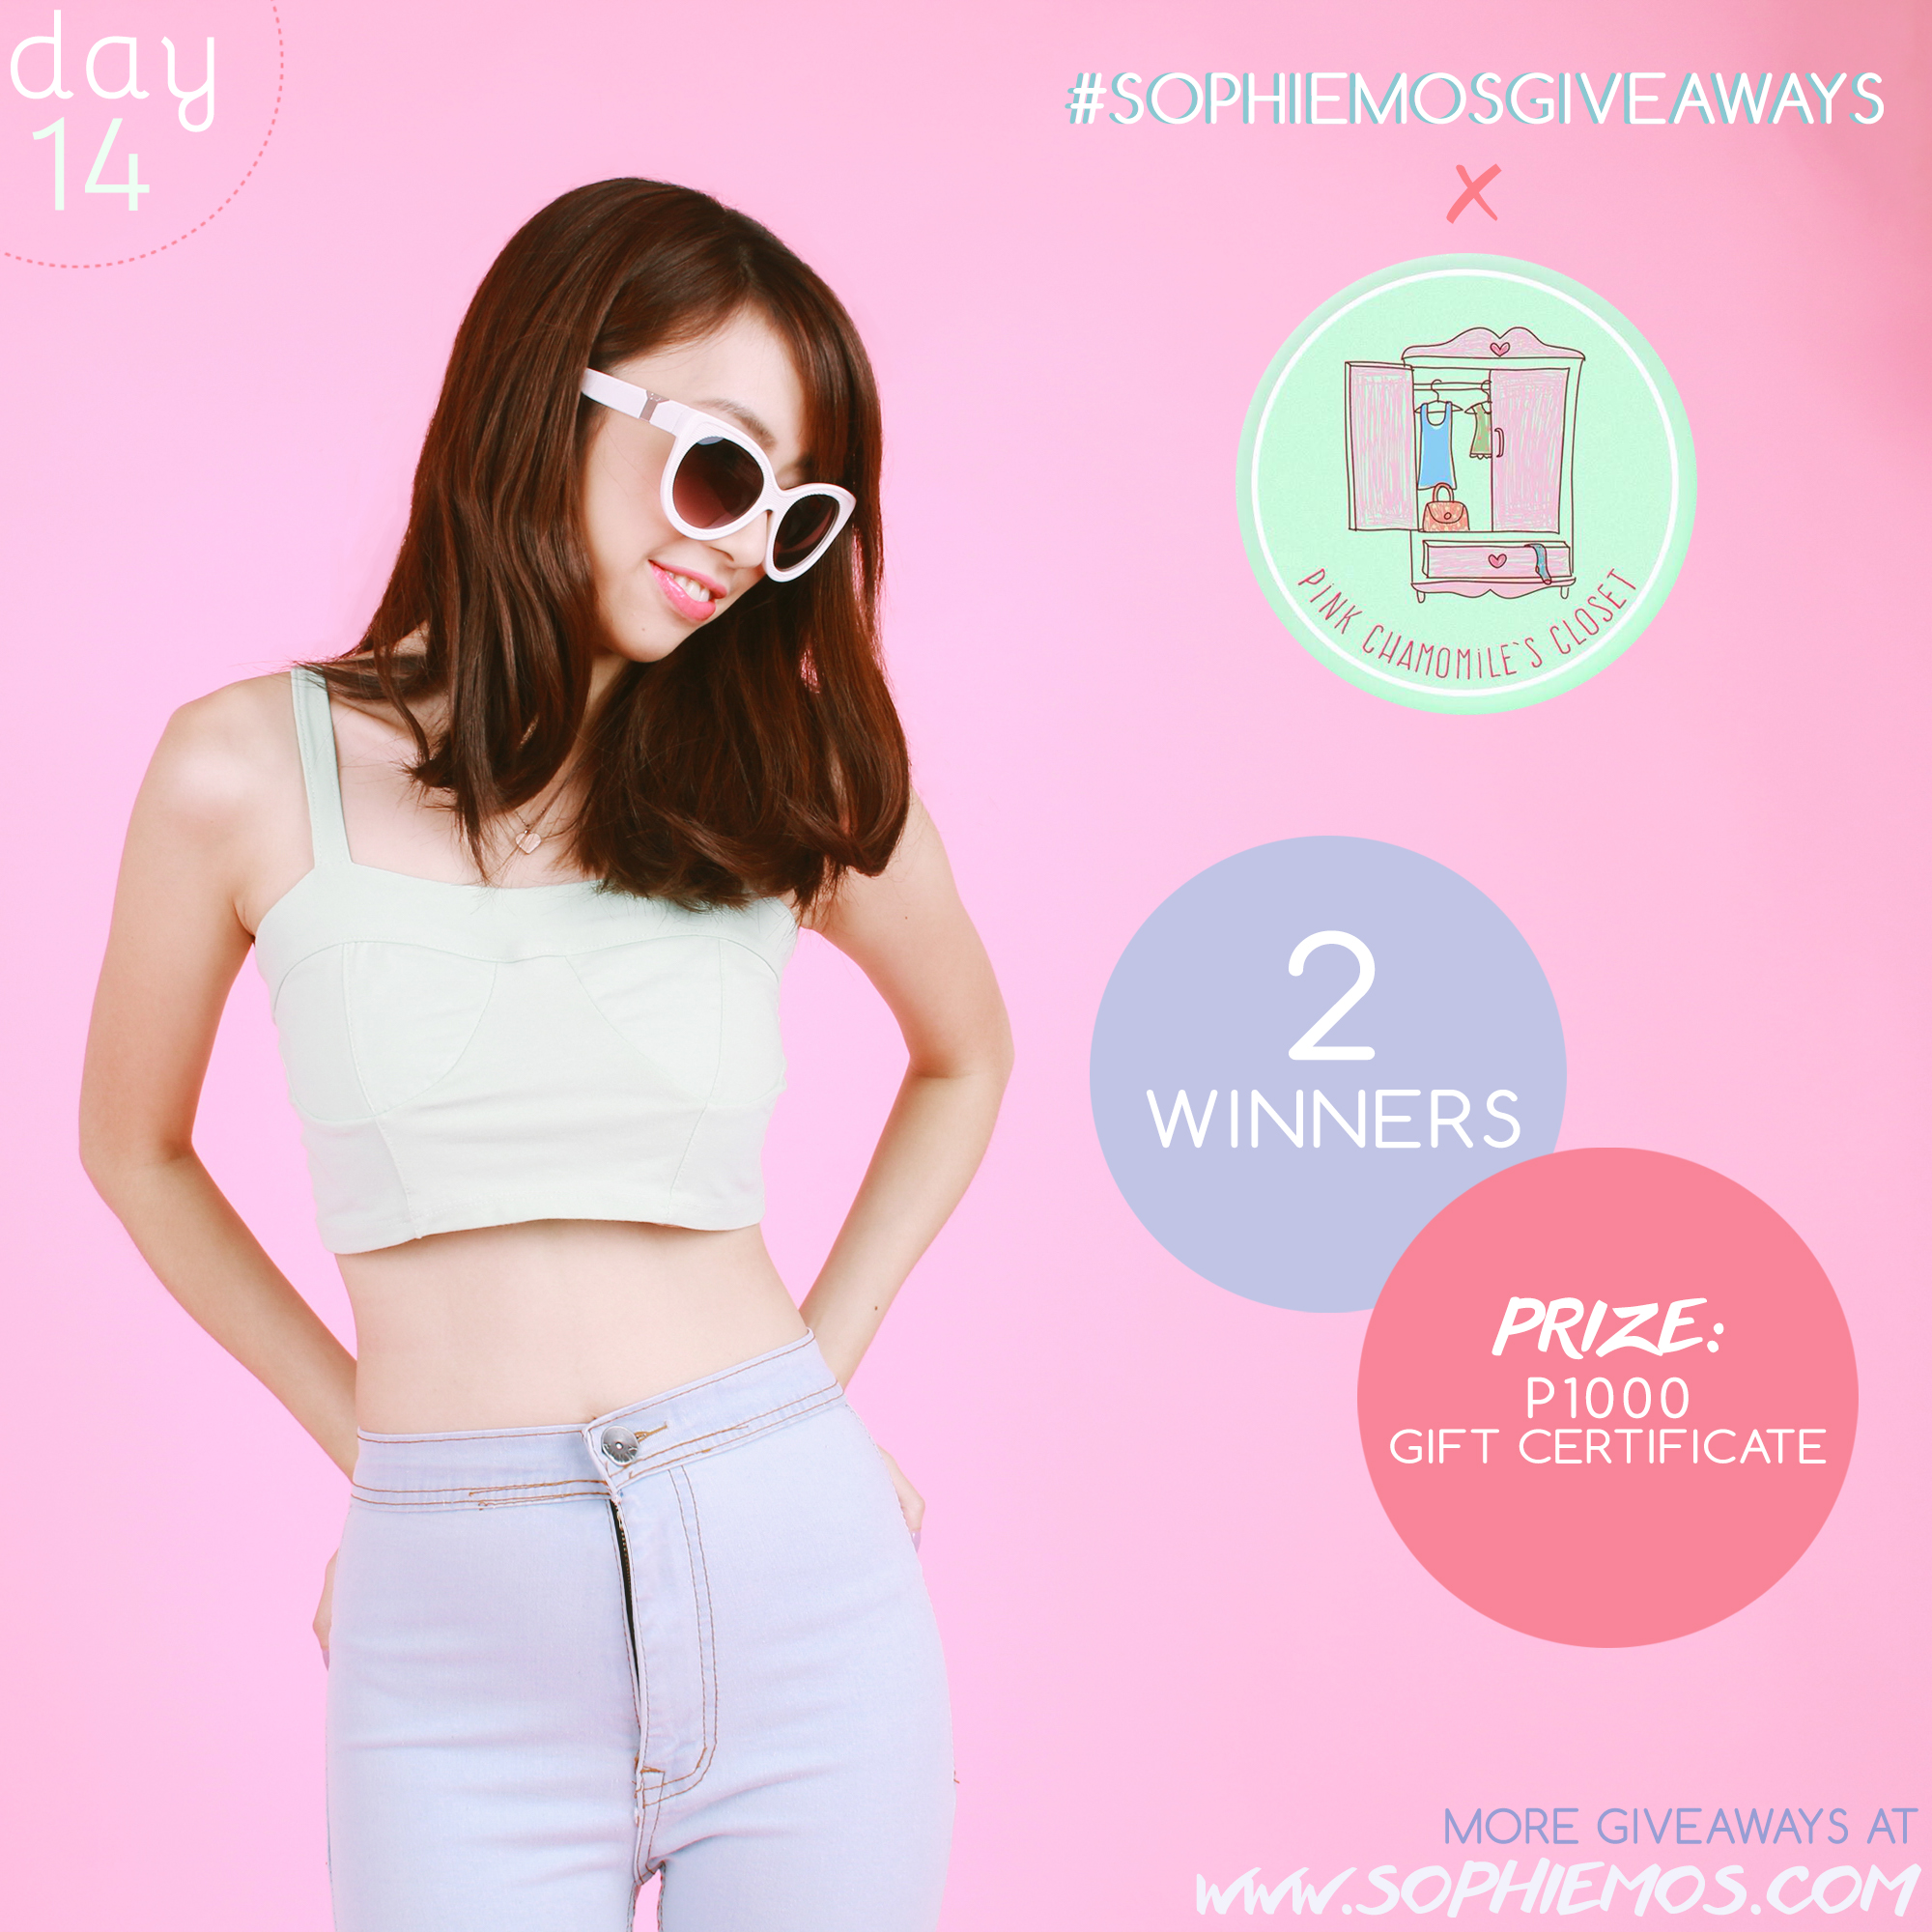 [CLOSED] DAY 14 OF #SOPHIEMOSGIVEAWAYS: PINK CHAMOMILE'S CLOSET